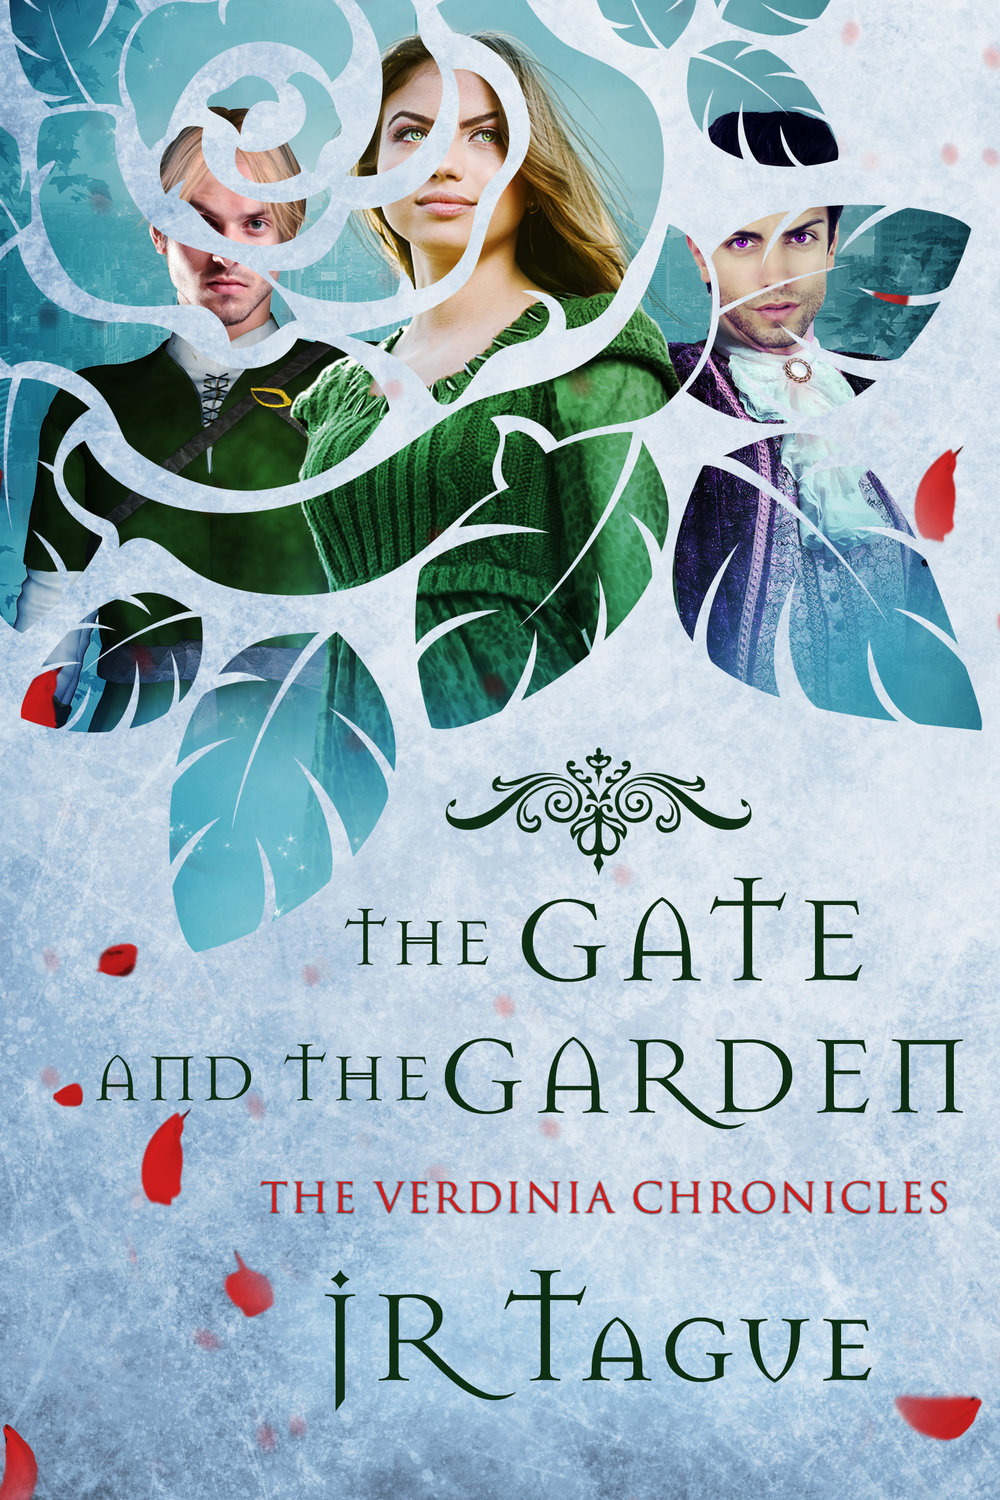 The Gate and the Garden (Book One) - Coming soon